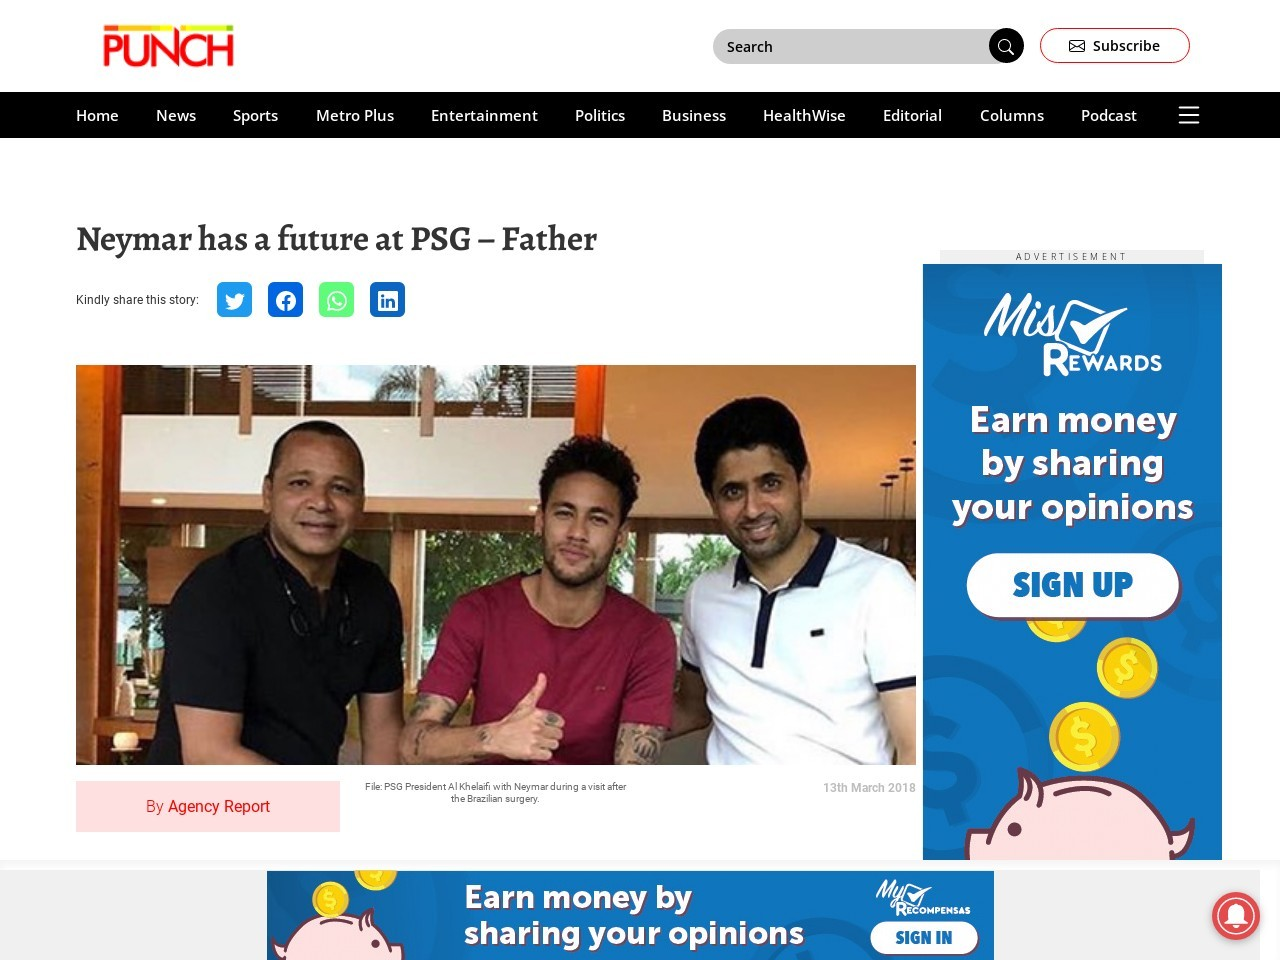 Neymar has a future at PSG – Father